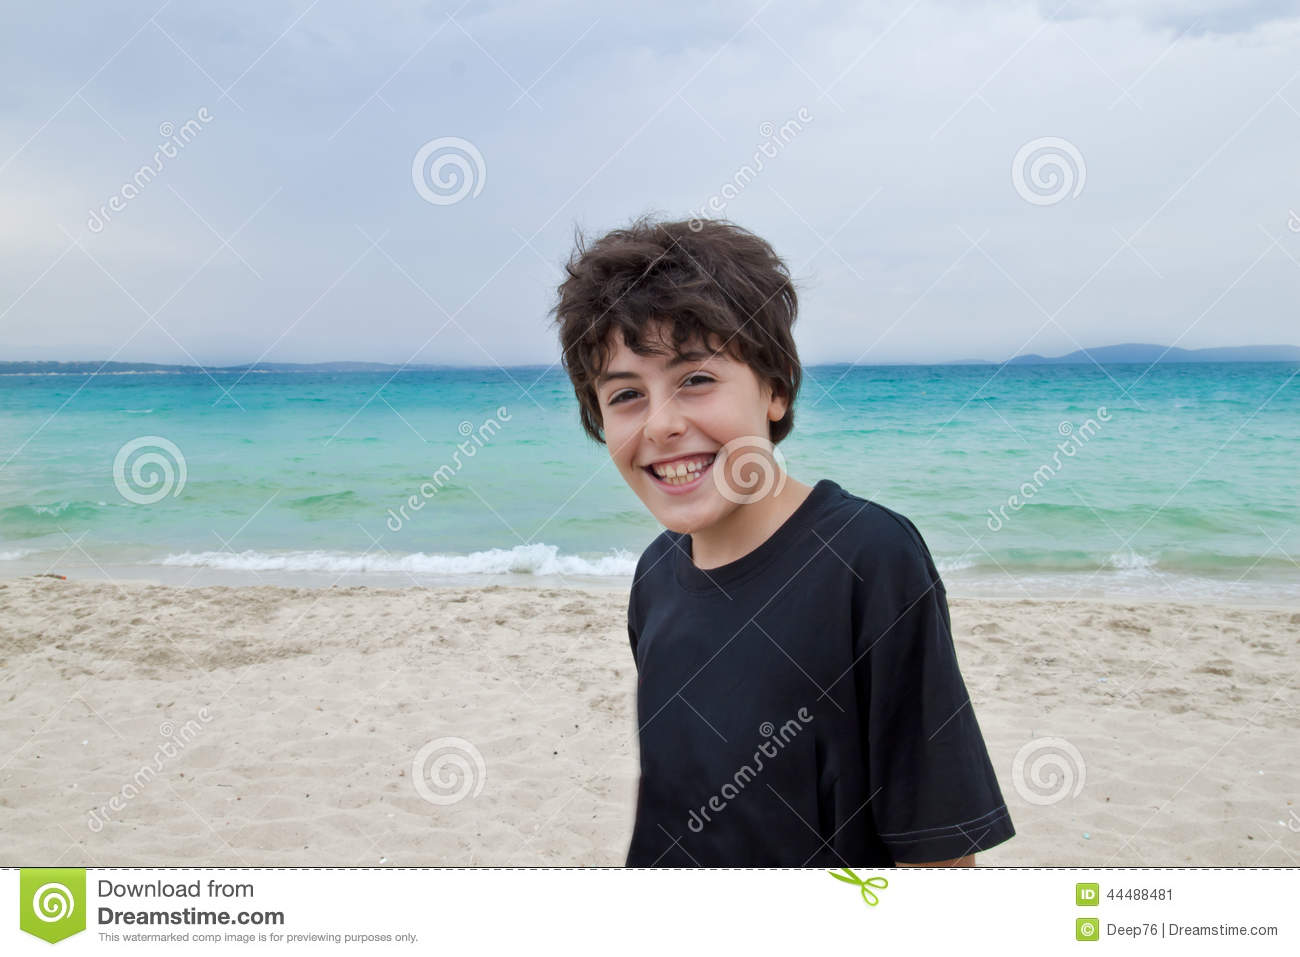 The Boy is Have Fun in Beaches